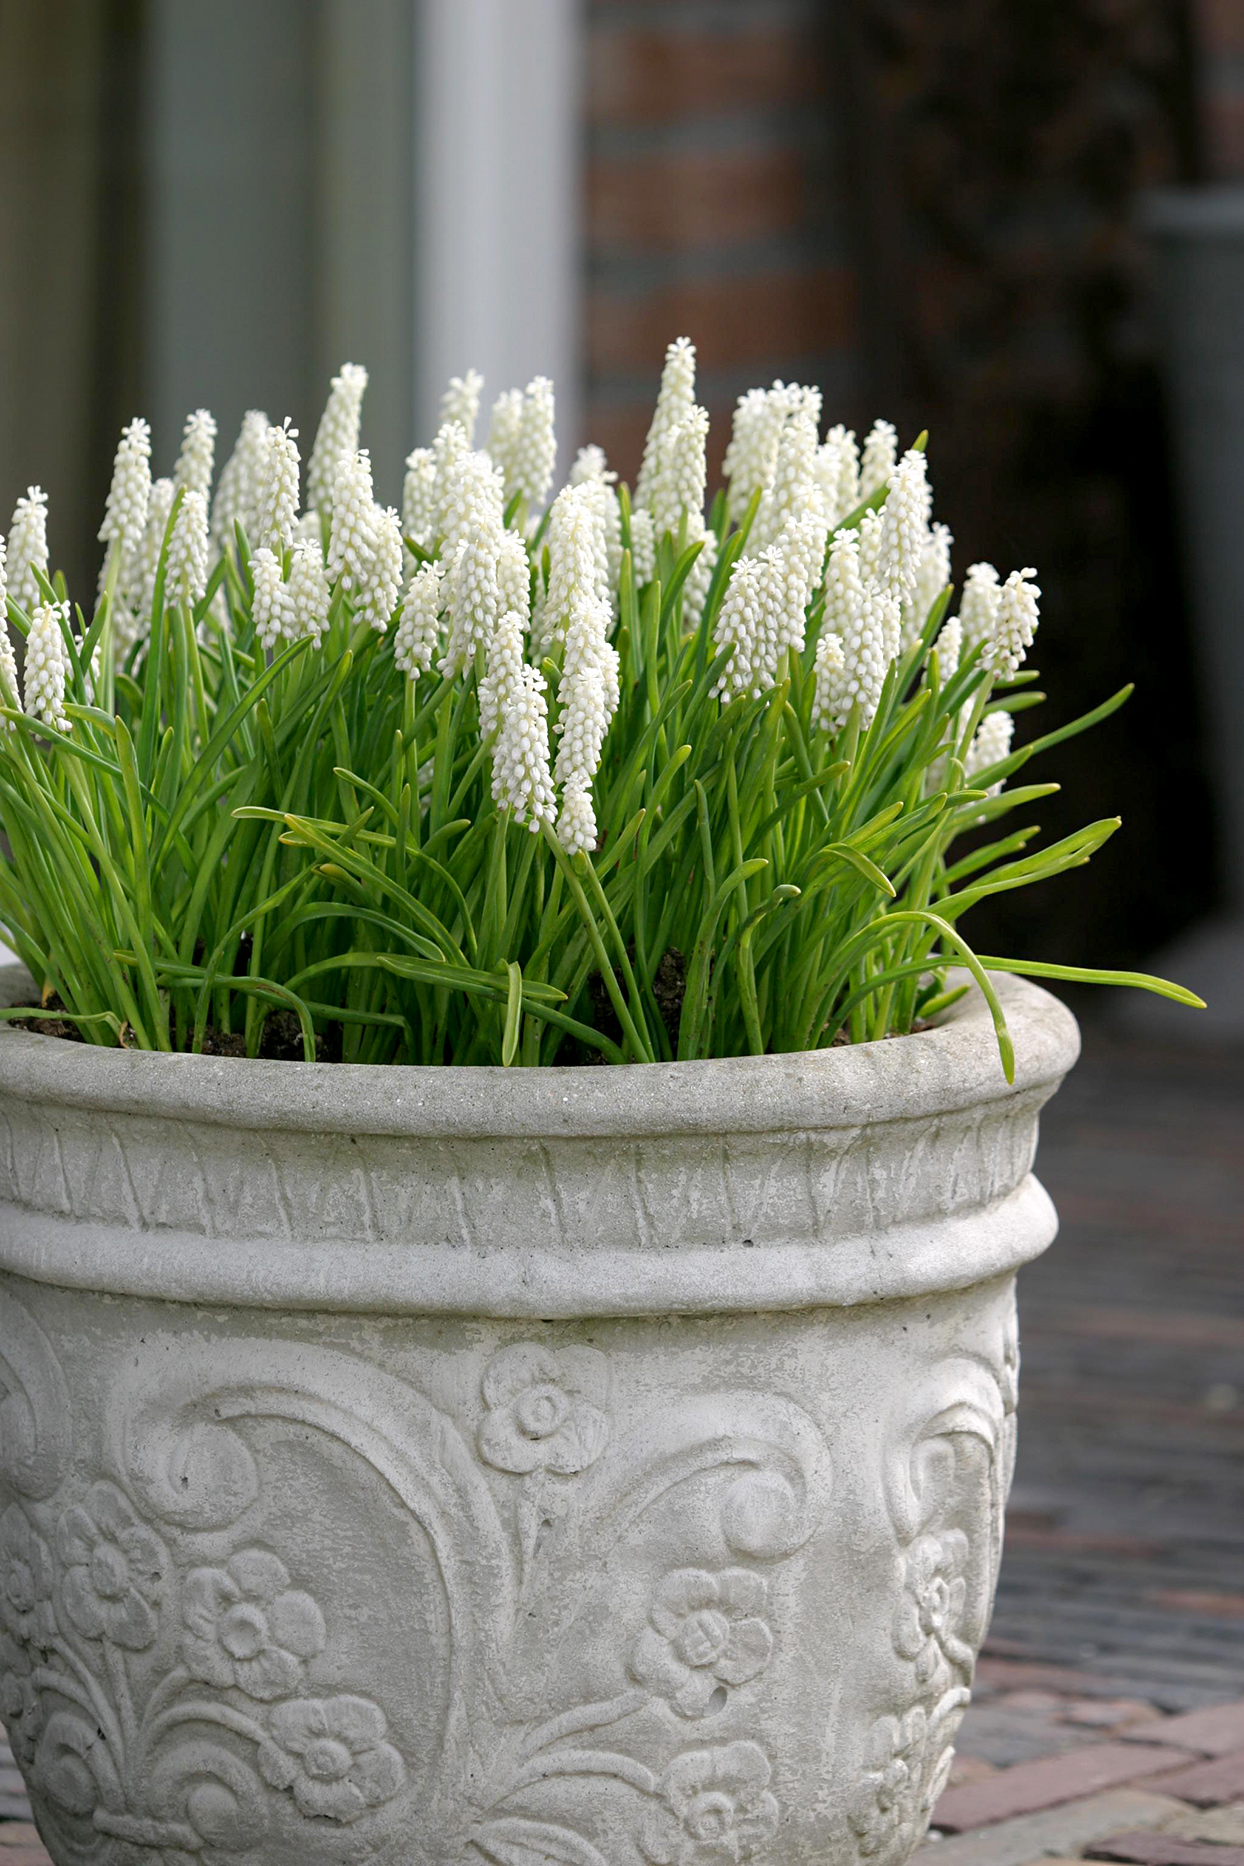 White grape hyacinth